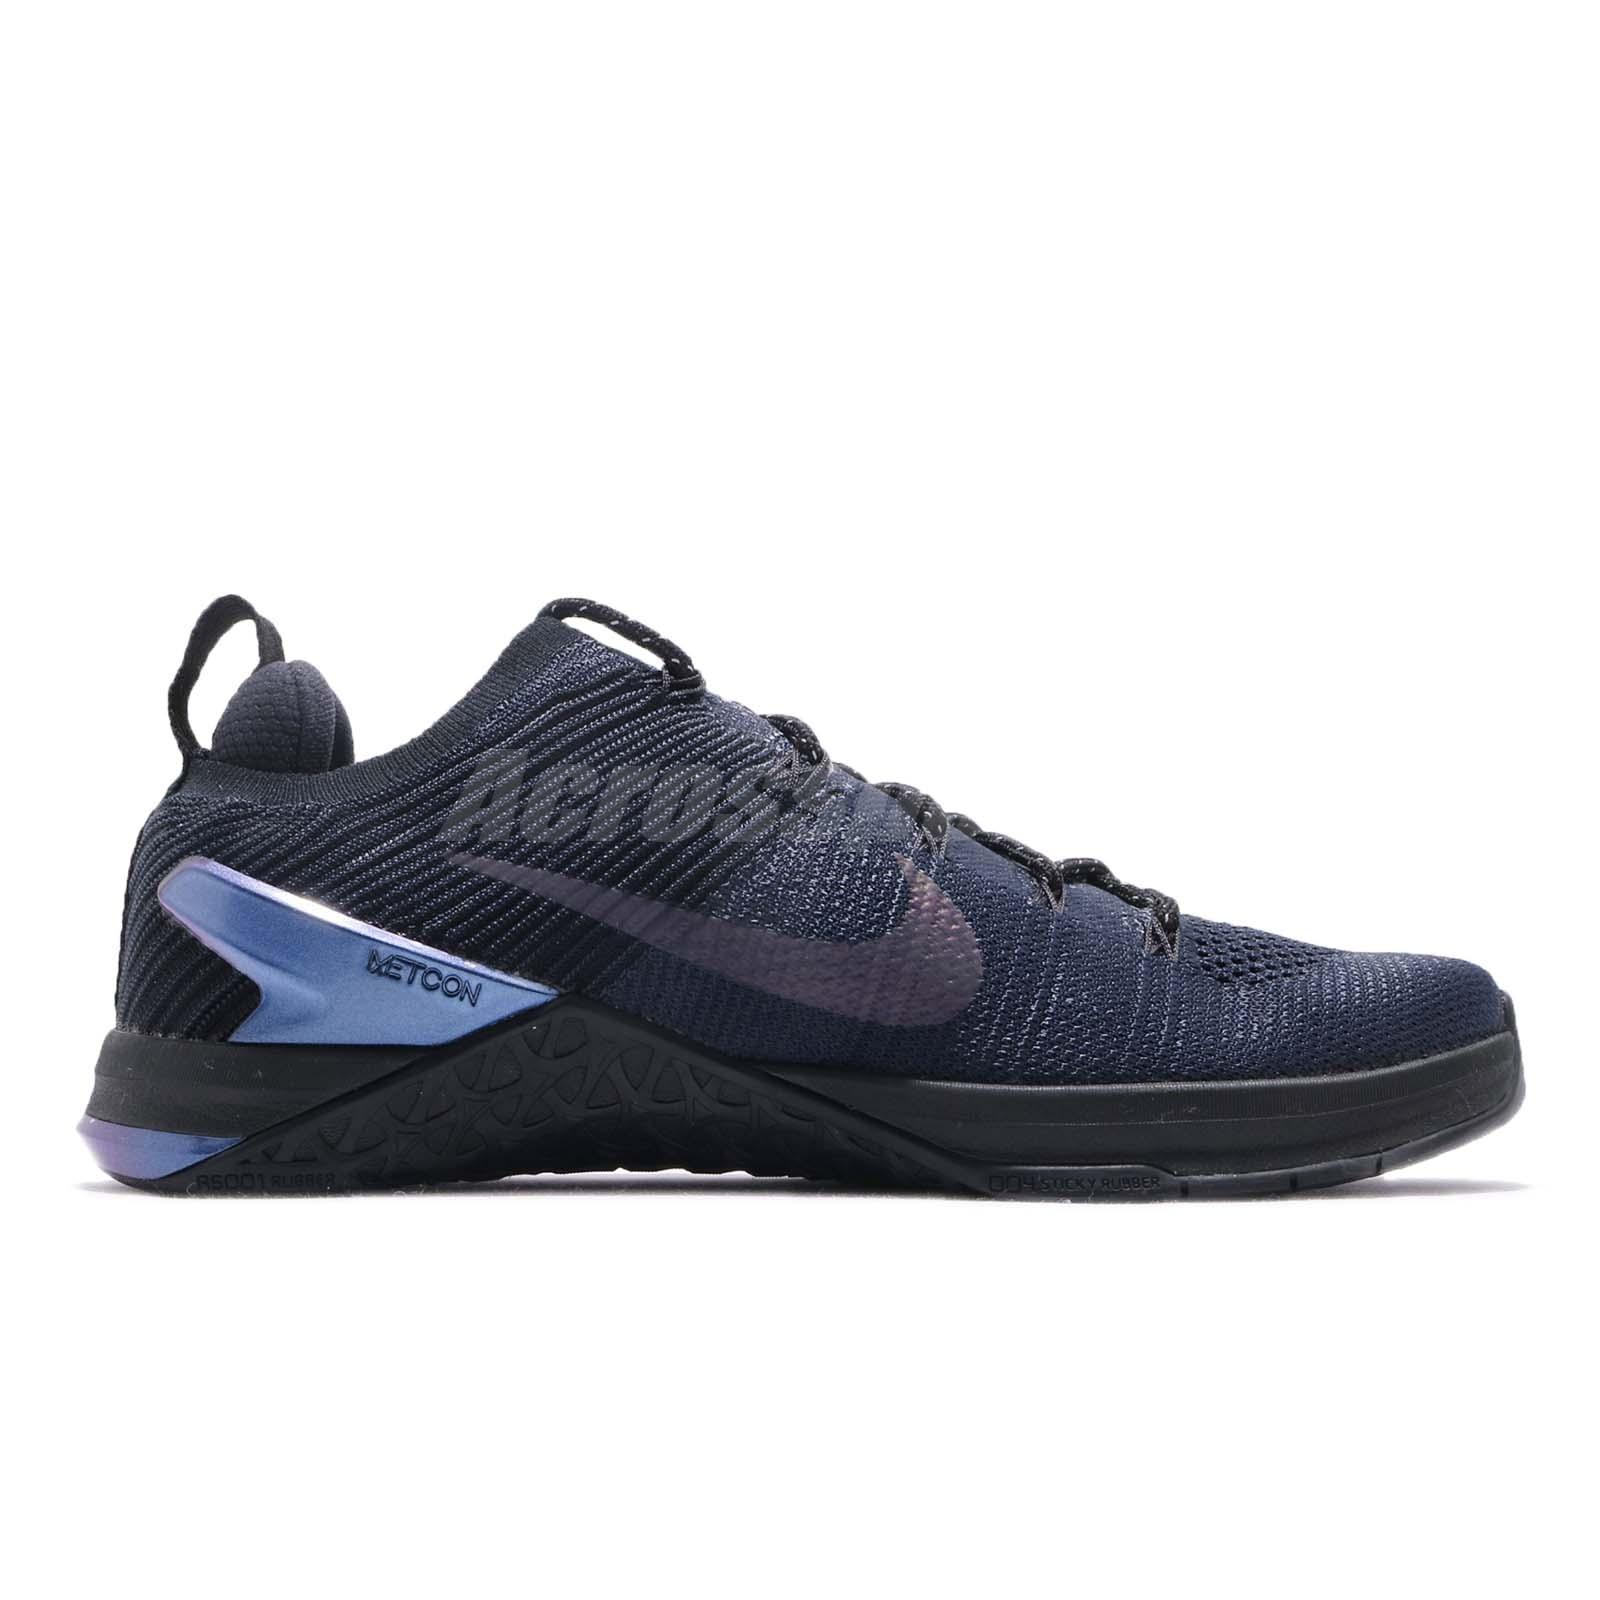 203fbd4a4076 Nike Metcon DSX Flyknit 2 AMP FK College Navy Blue Training Shoes ...